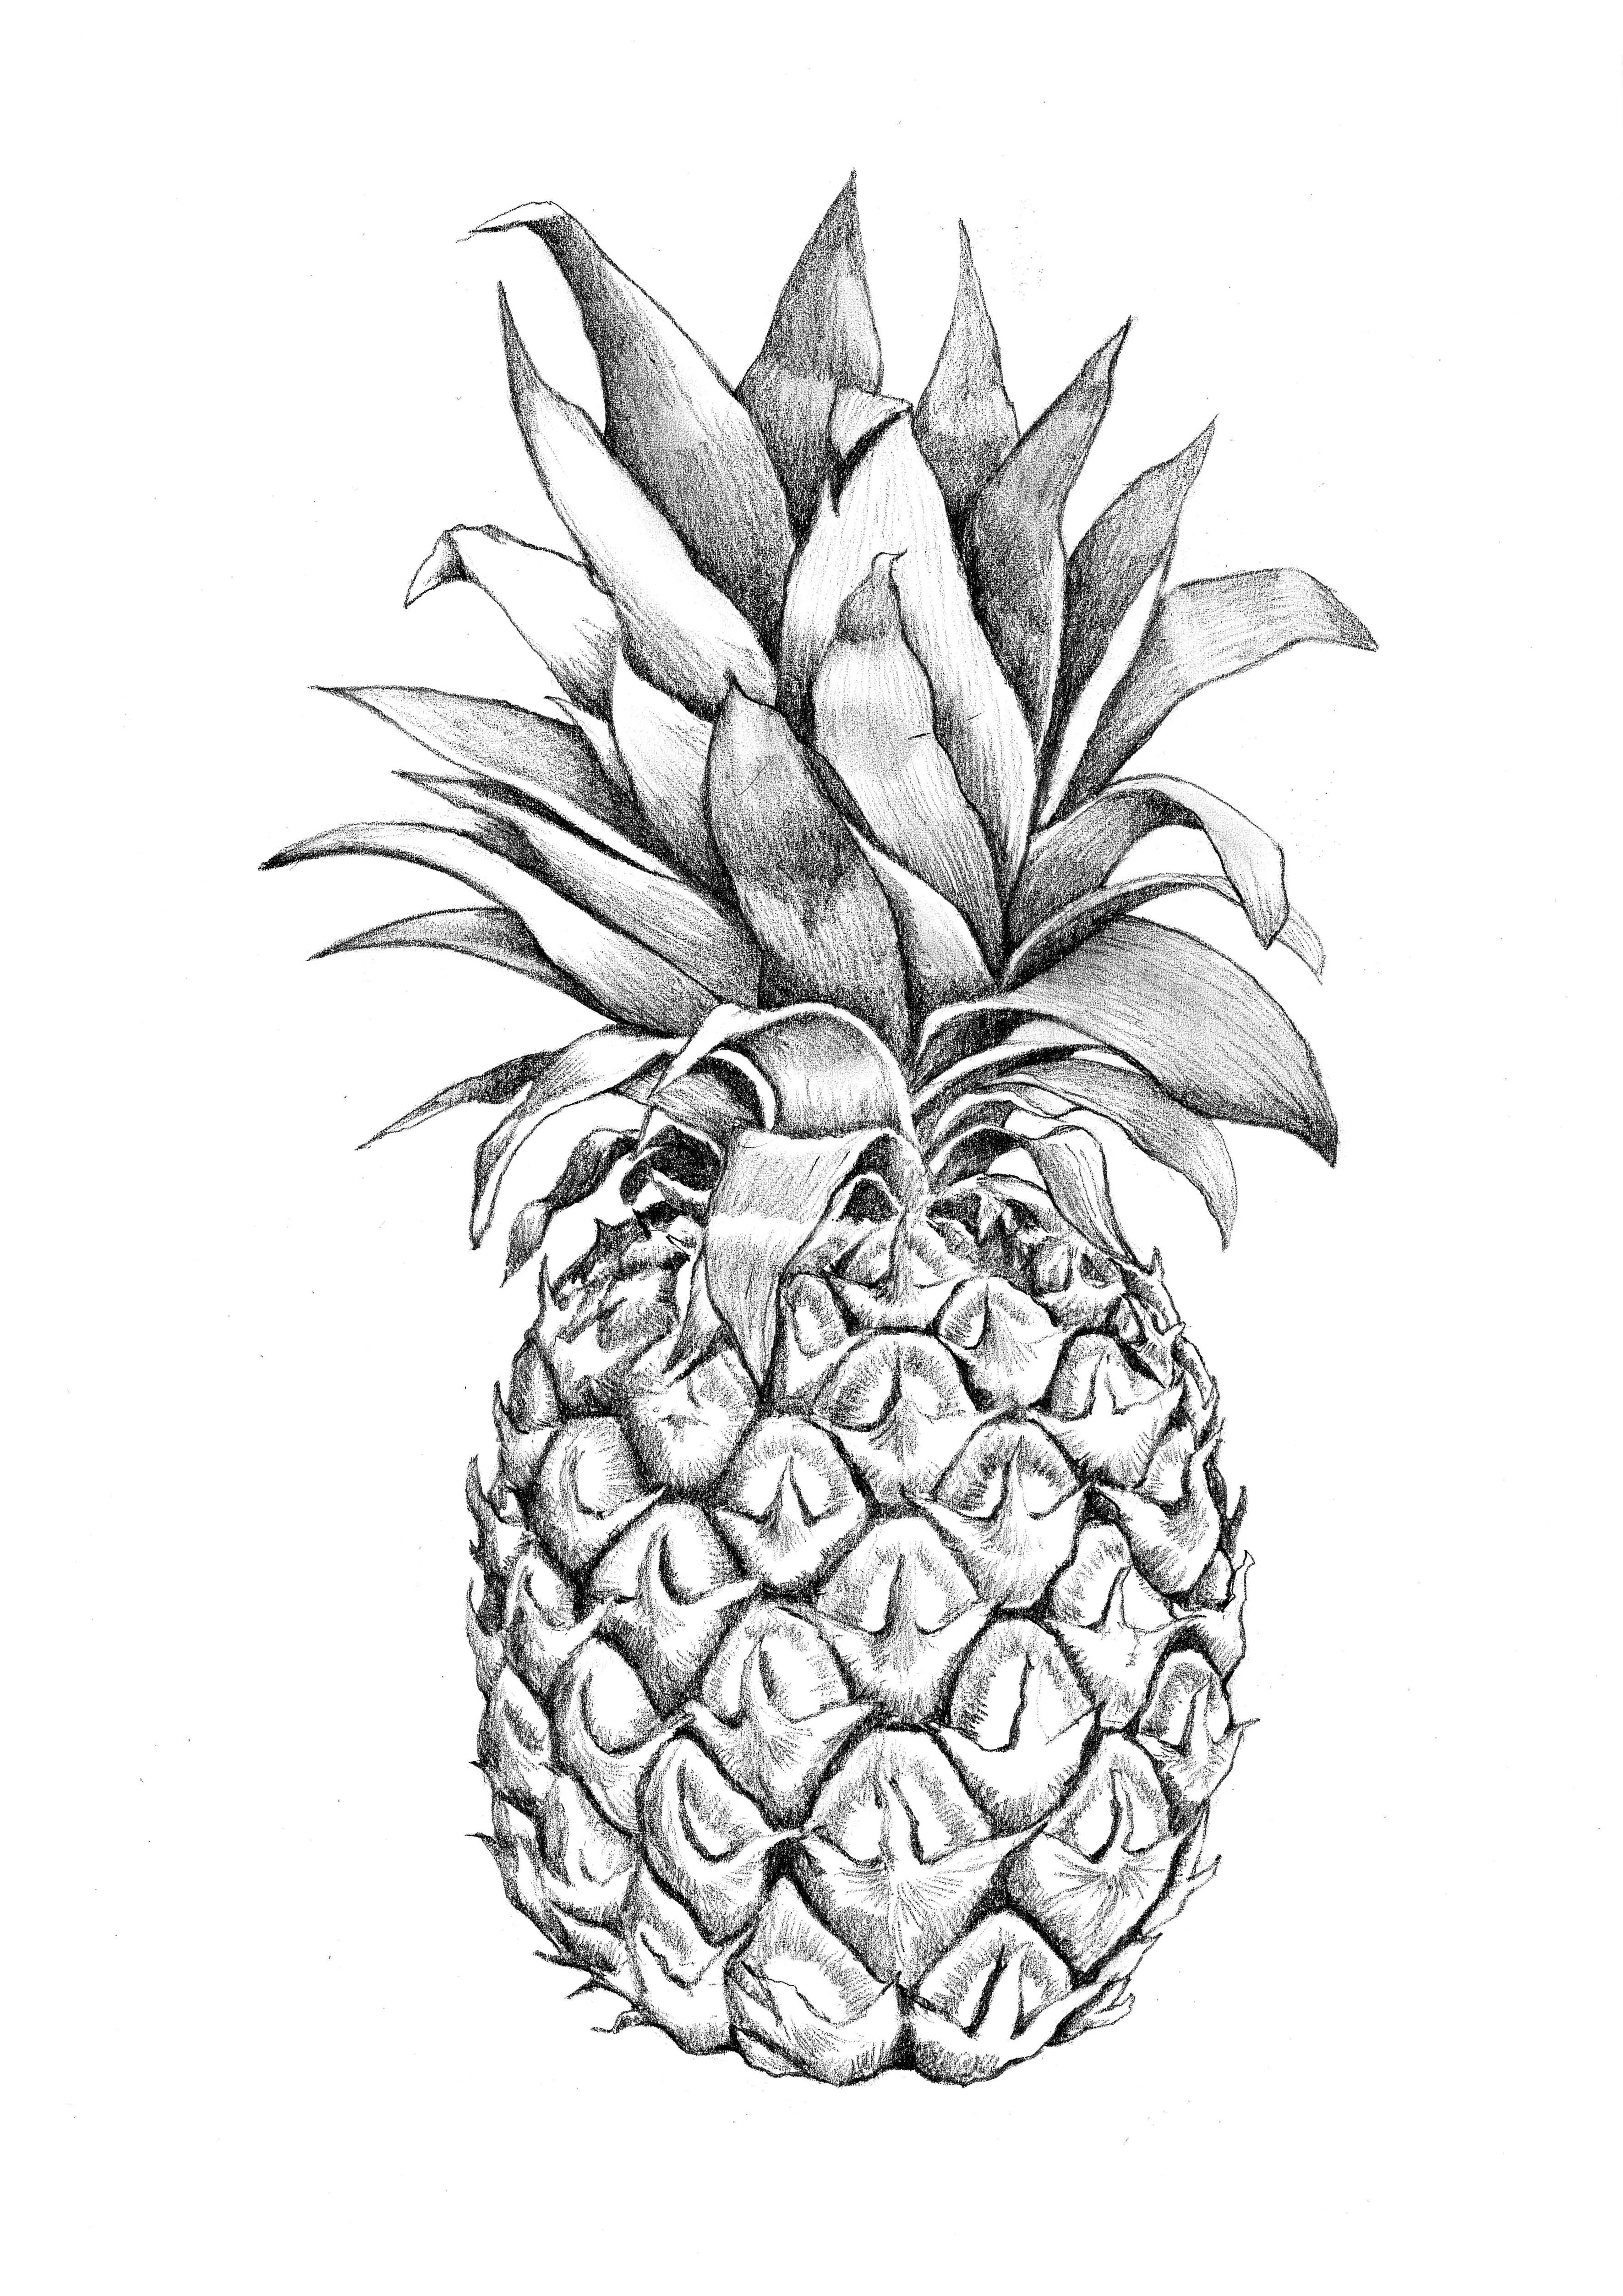 3543x5011 Images For Gt Pineapple Graphic Design Pineapples